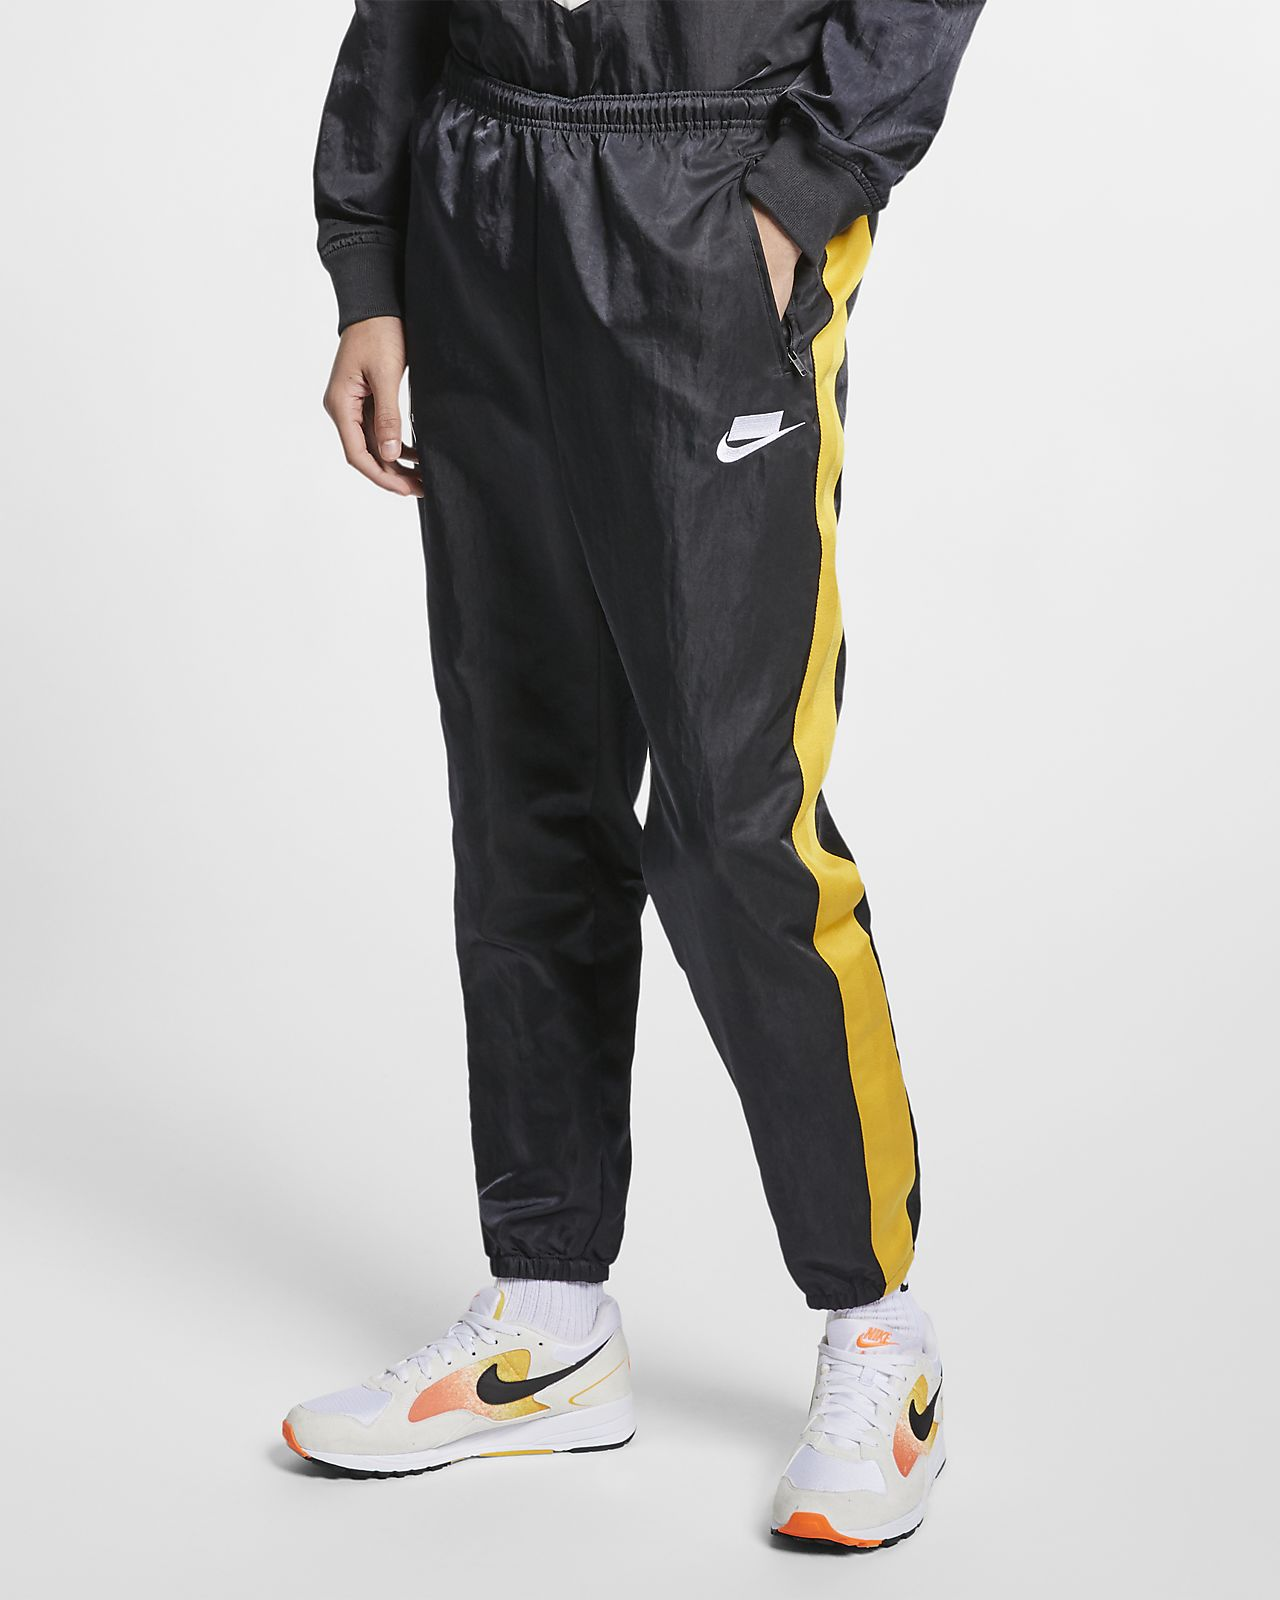 Nike Sportswear NSW Men's Woven Trousers